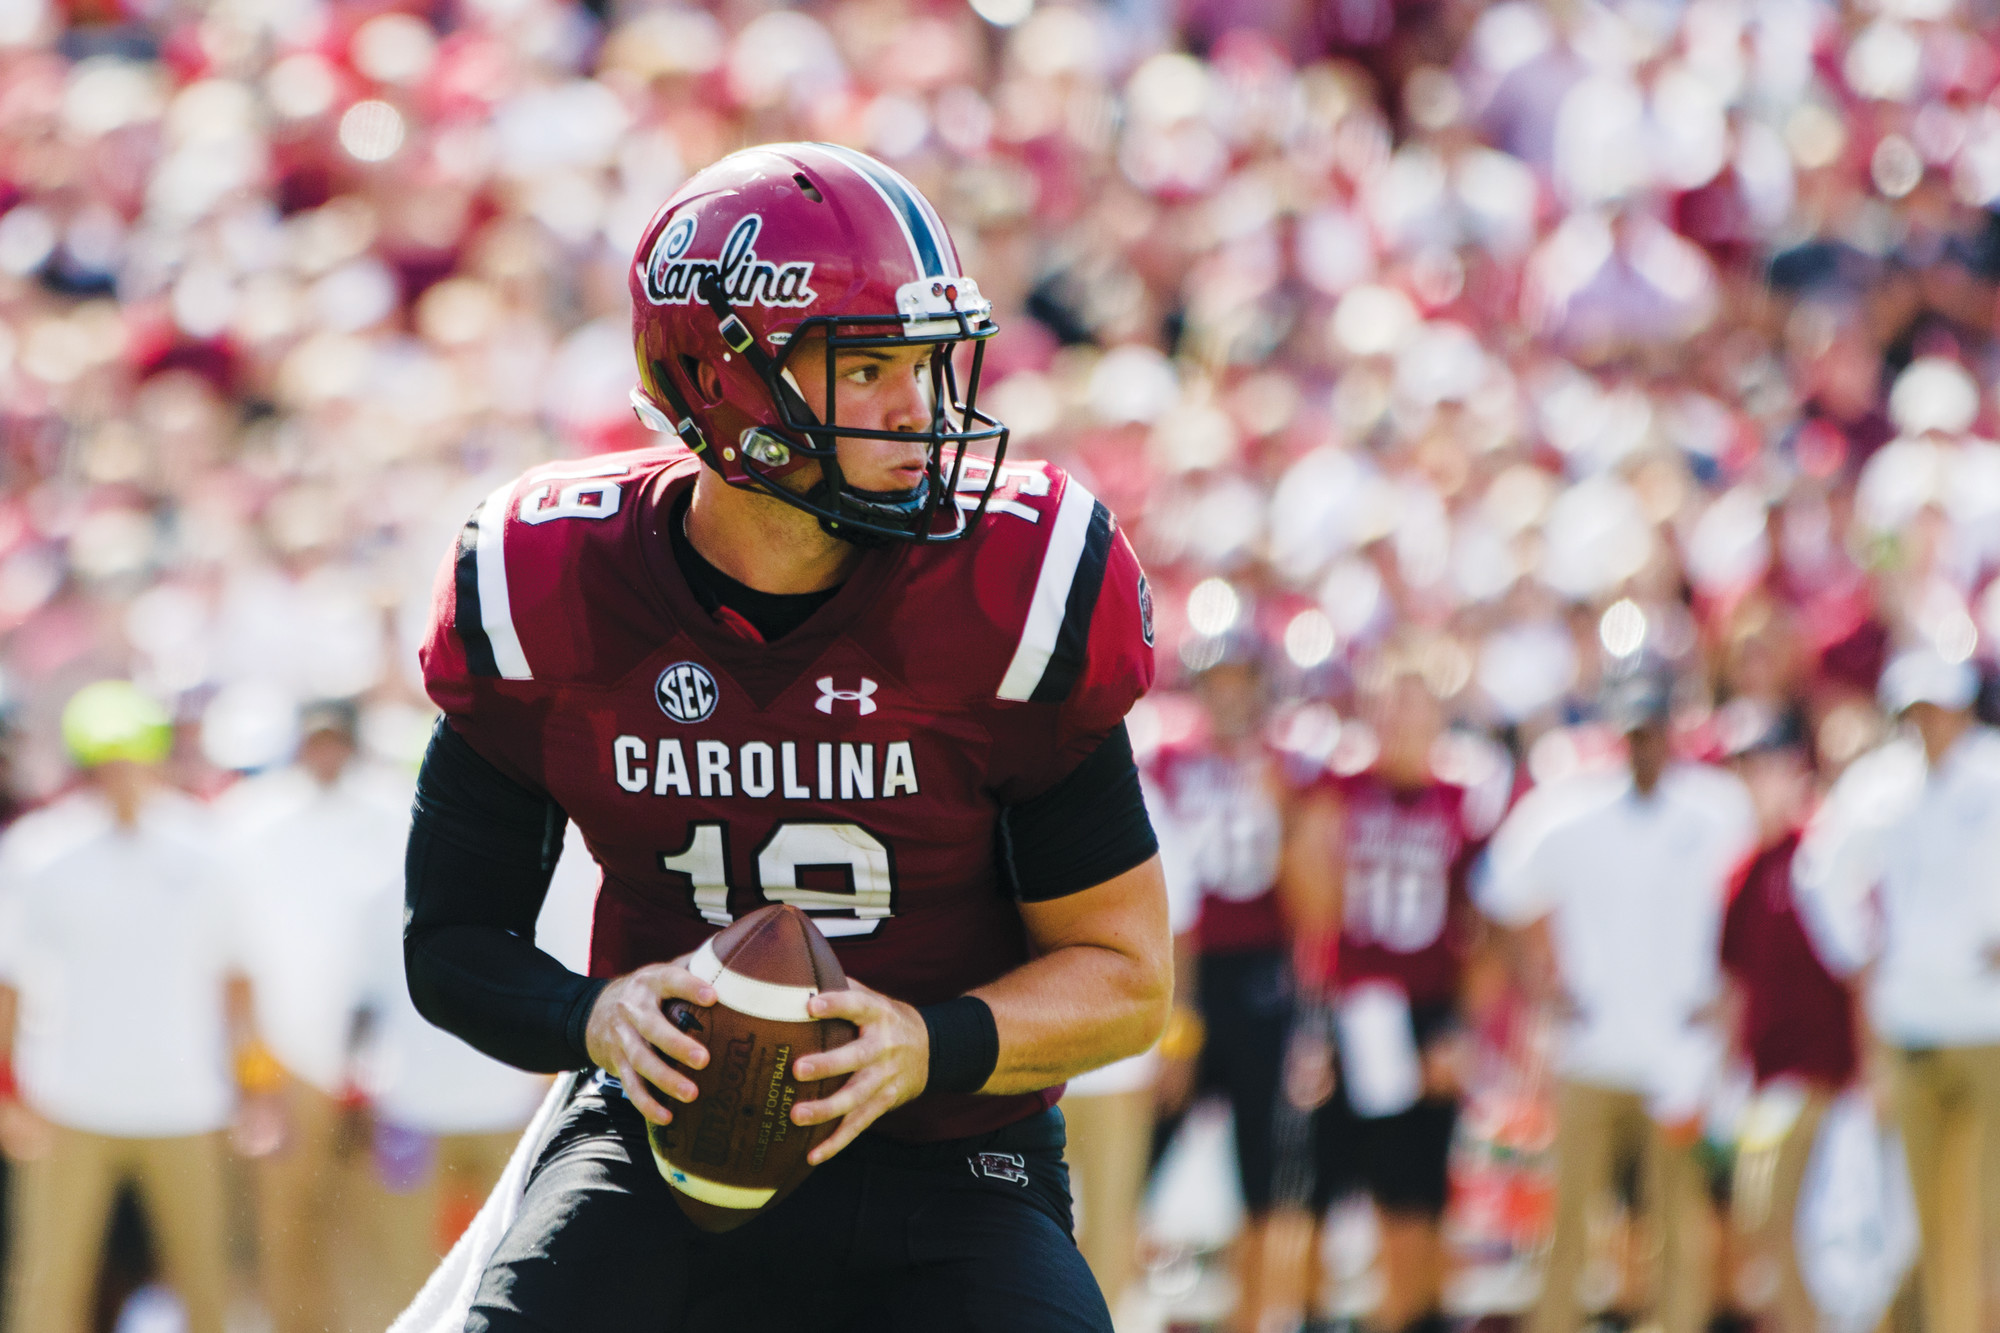 South Carolina quarterback Jake Bentley looks for an open receiver during the Gamecocks' 41-17